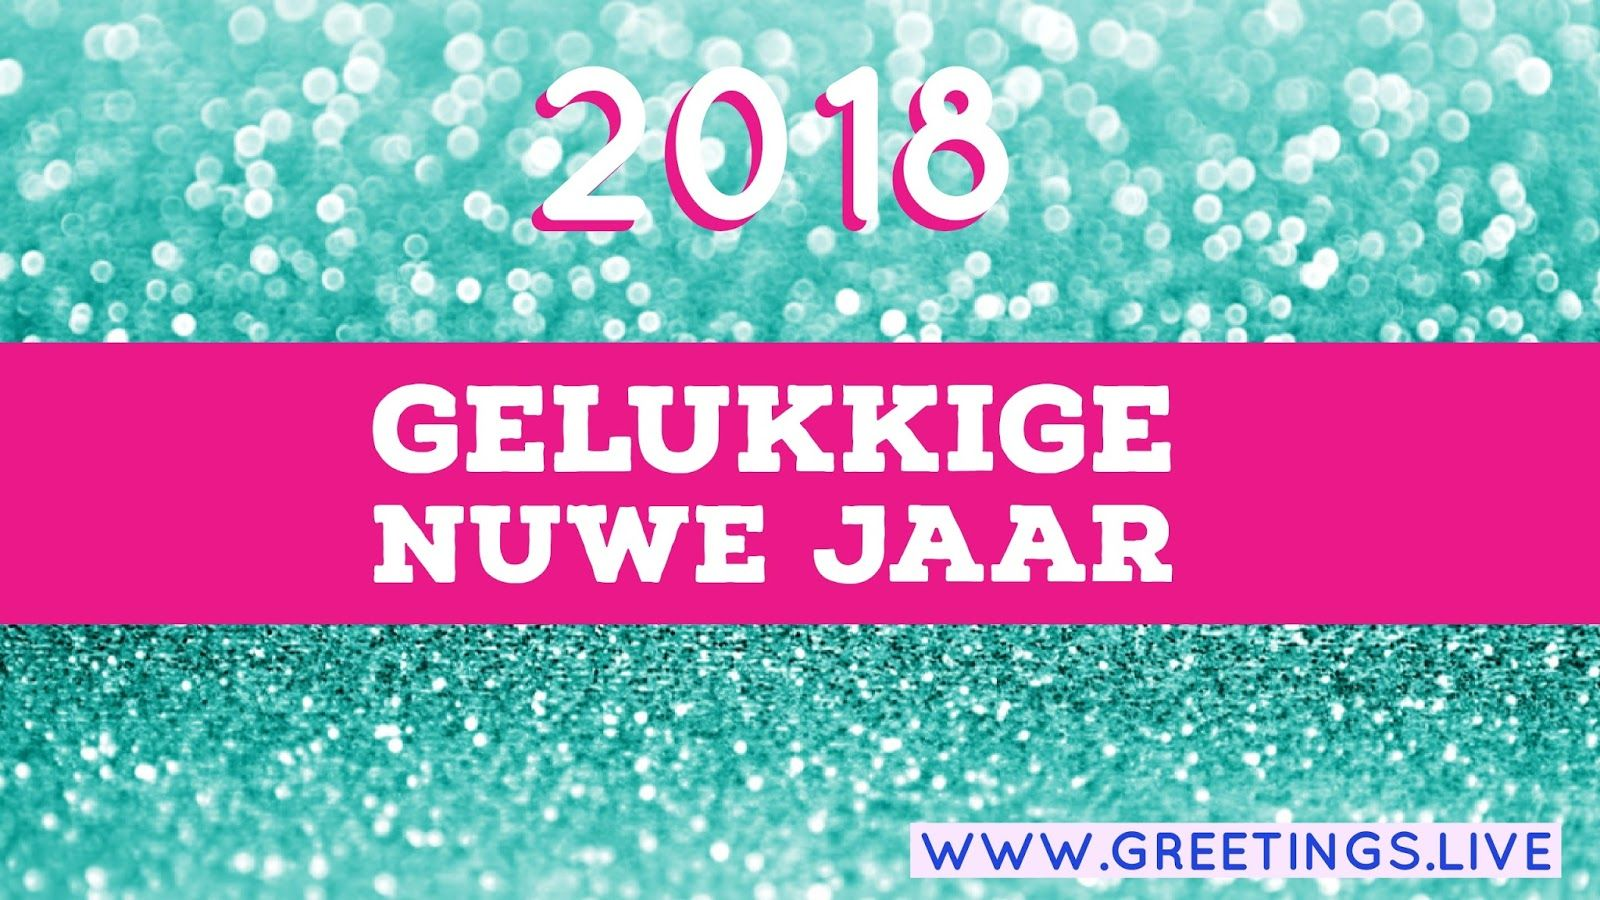 Happy new year in all languages in the world pinterest language we tried our level best to create all language greetings on happy new year 2018 all content translation support done using google translator greetings m4hsunfo